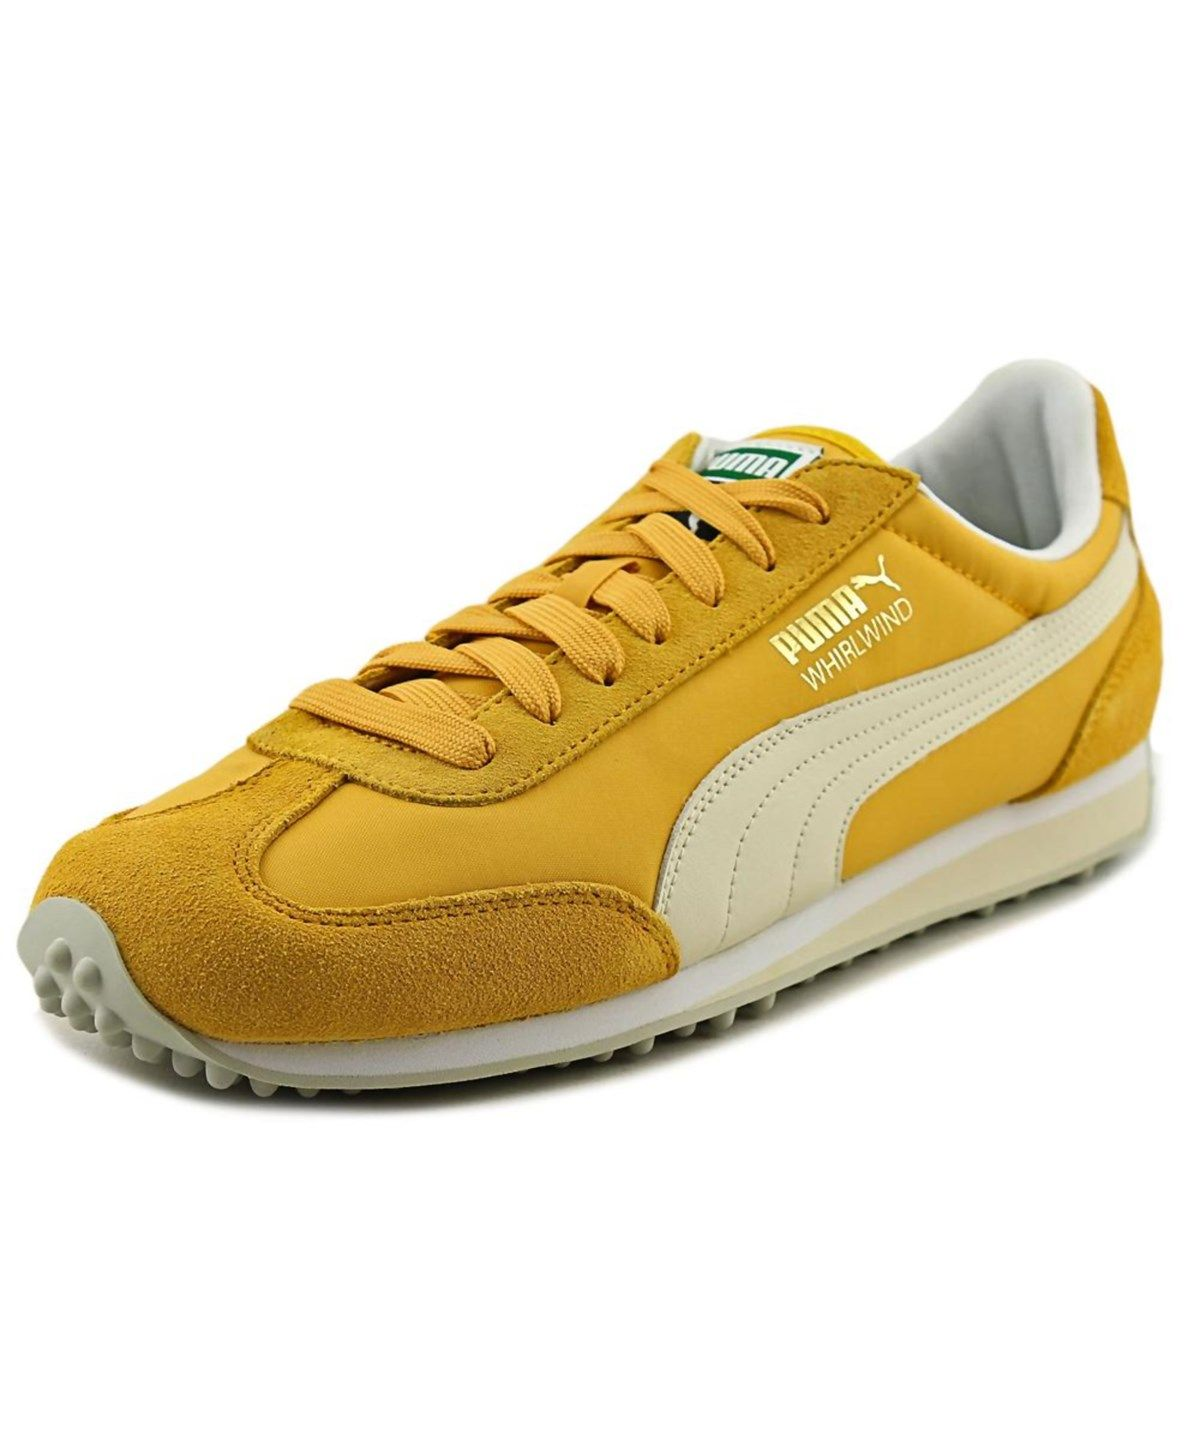 PUMA Puma Whirlwind Classic Suede Fashion Sneakers .  puma  shoes  sneakers b0ba141d4